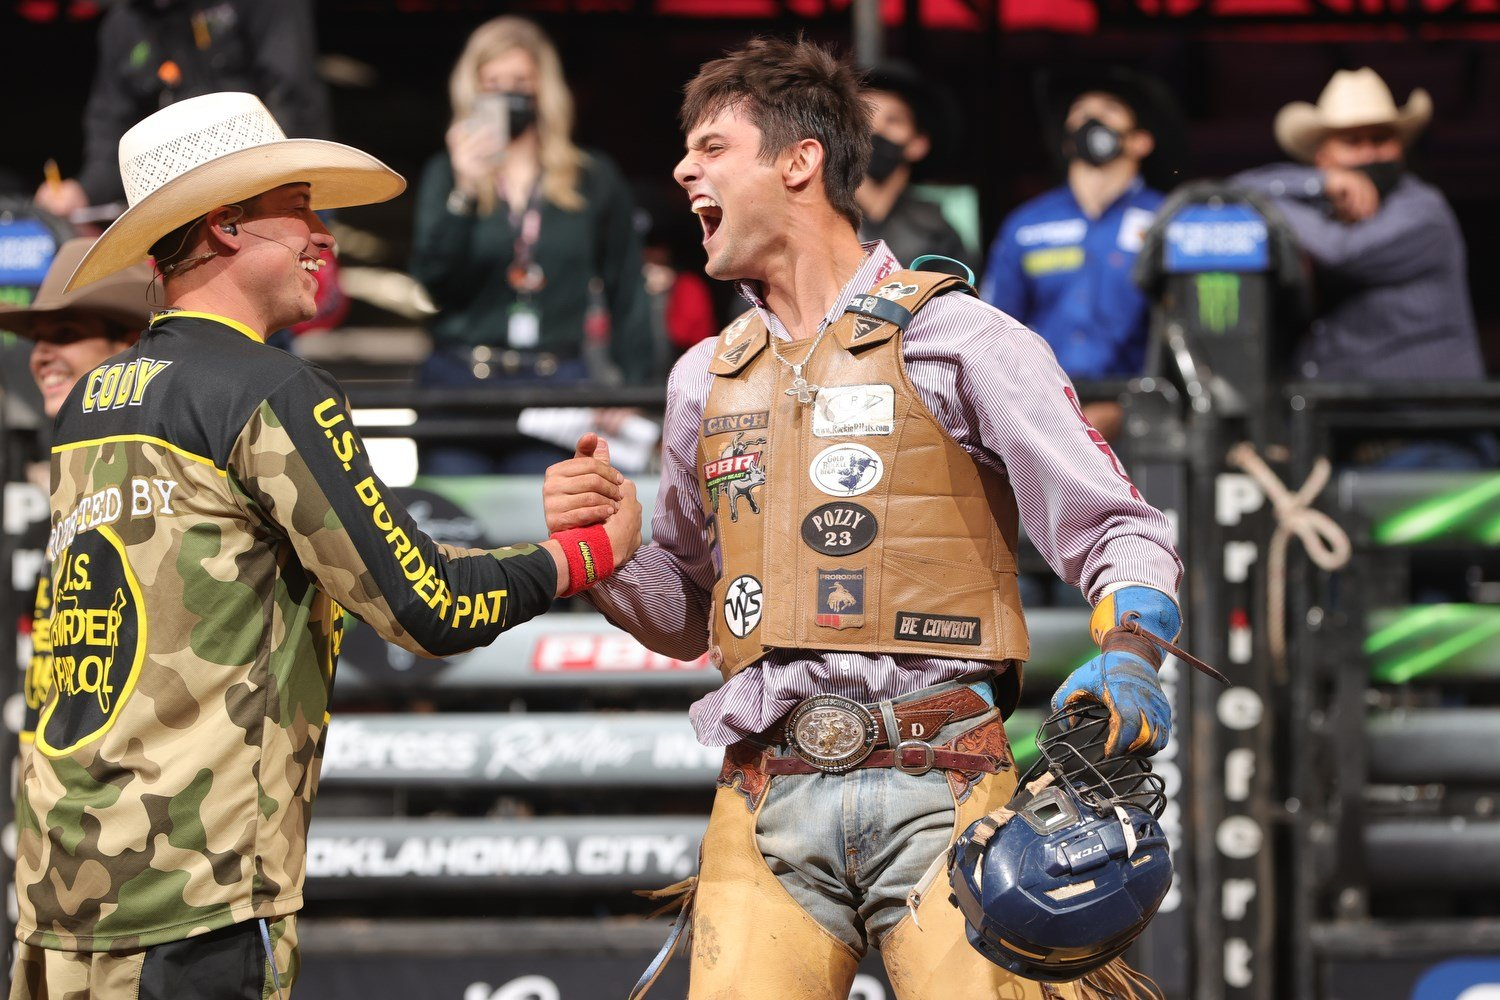 Bull Rider Picks Detroit While in Omaha